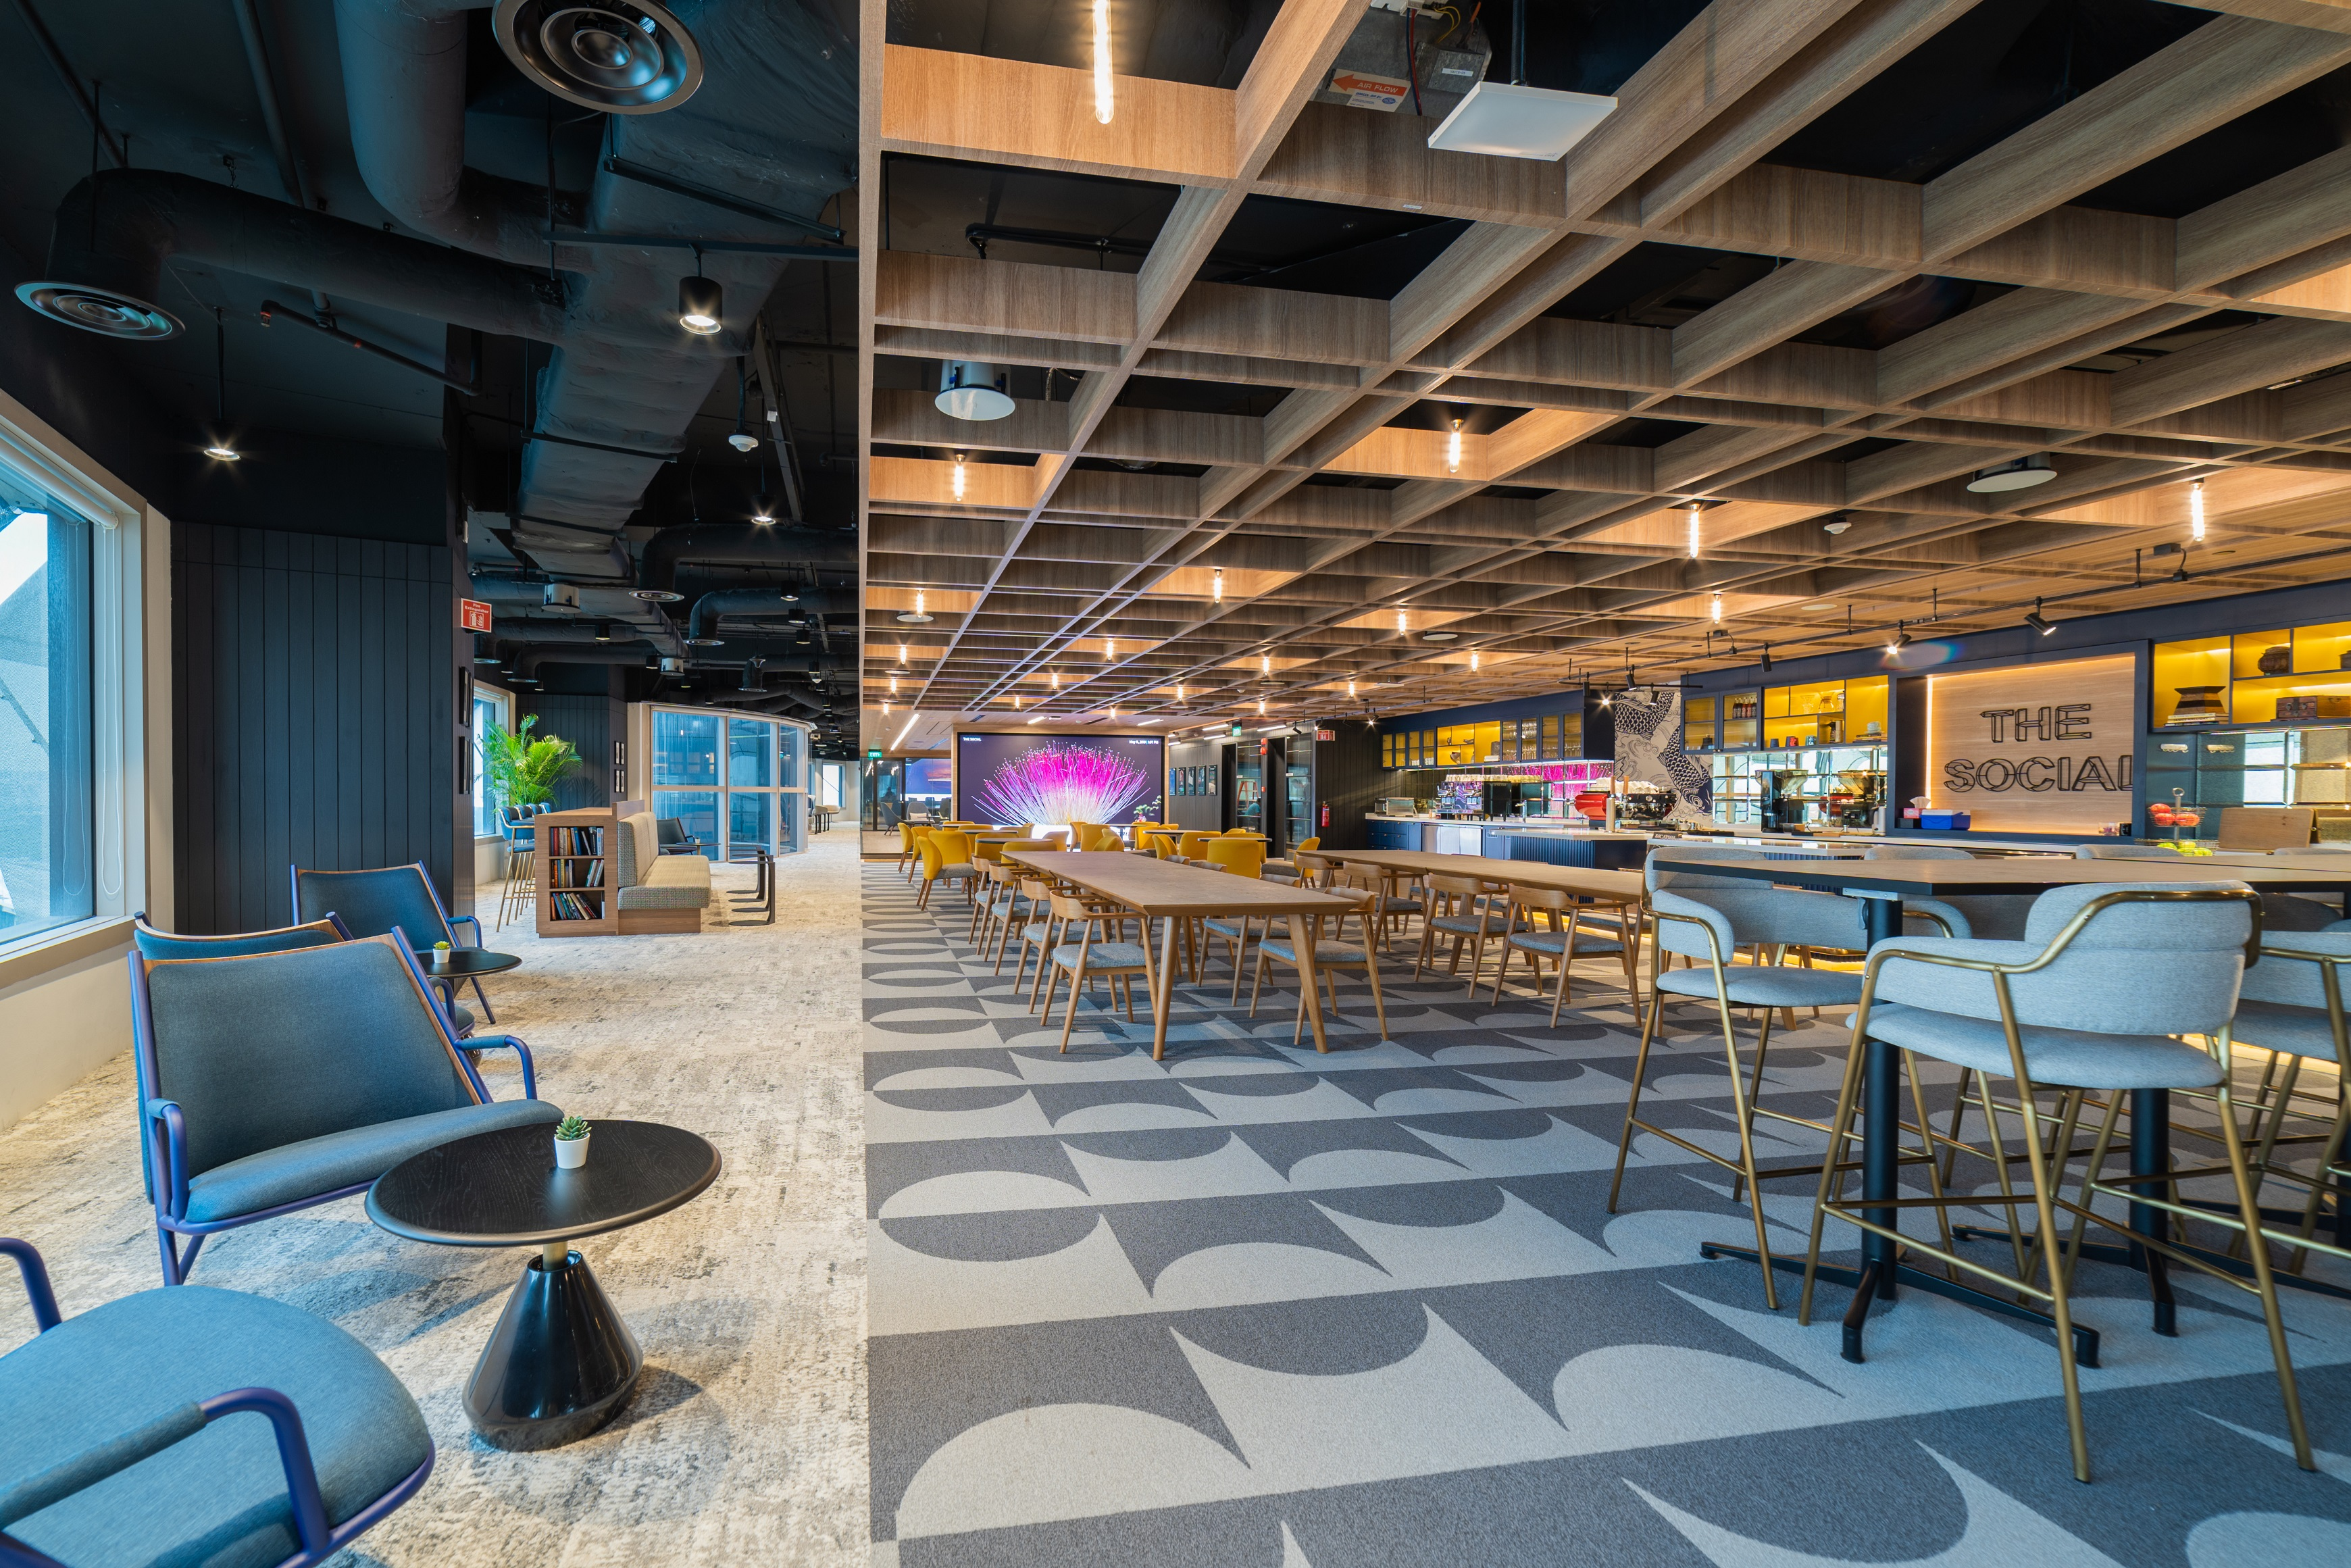 Hilton's Singapore workplace strategy captures the brand's emphasis on hospitality